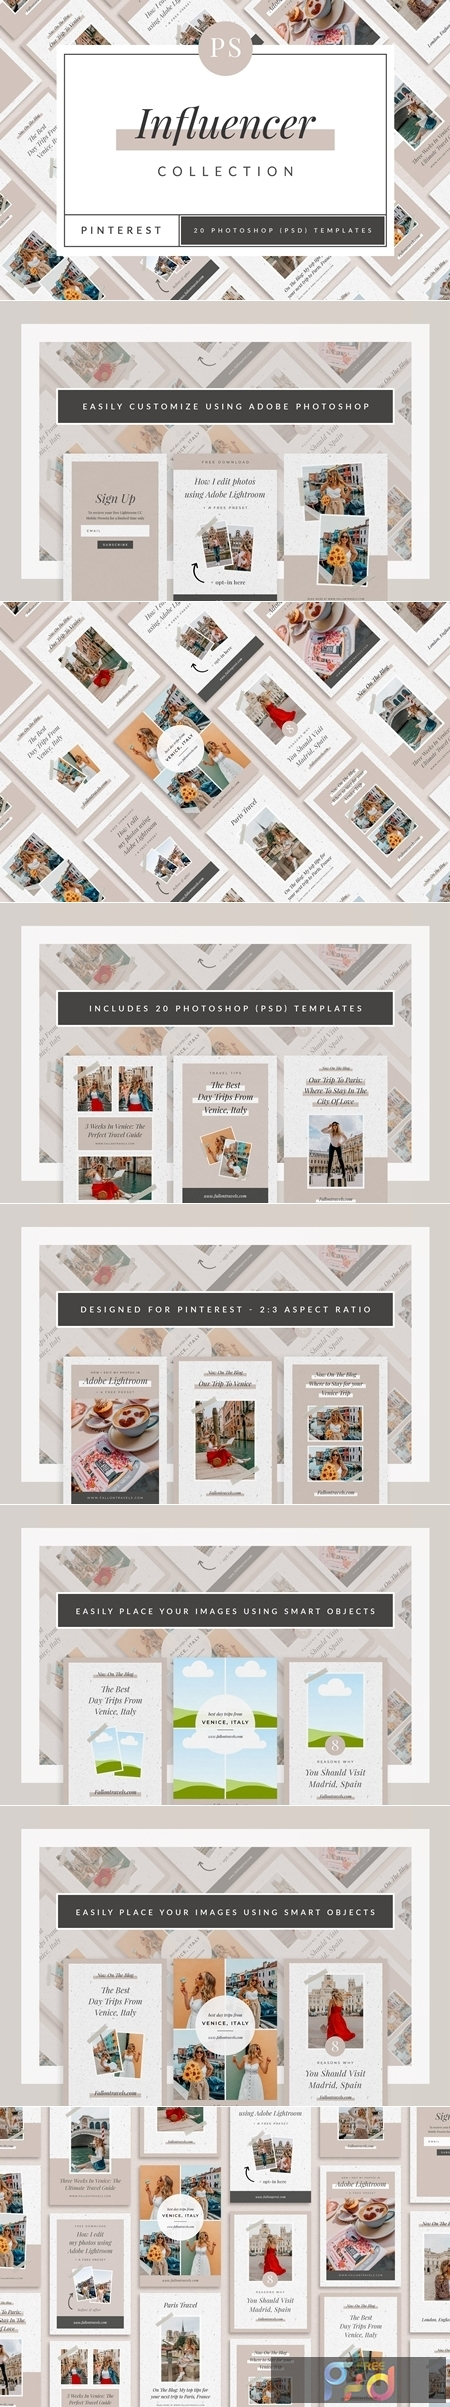 Influencer Pinterest Templates 3796392 1